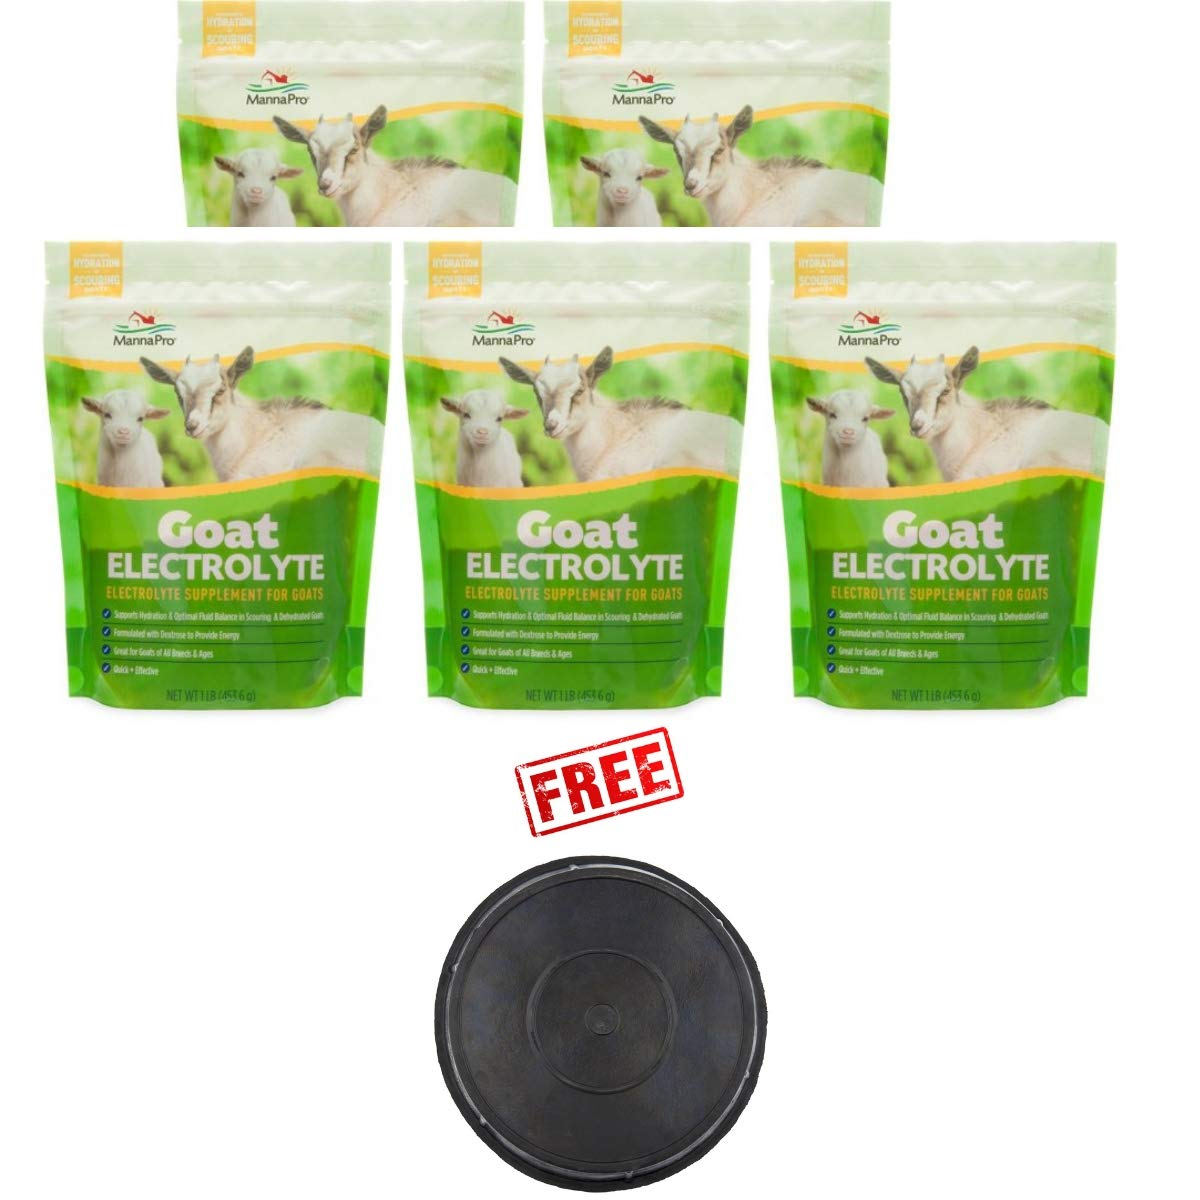 Manna Pro Pack of 5 Goat Electrolyte, 1 Pound, Supplement for Proper Hydration with Free! Buy More, Save More!